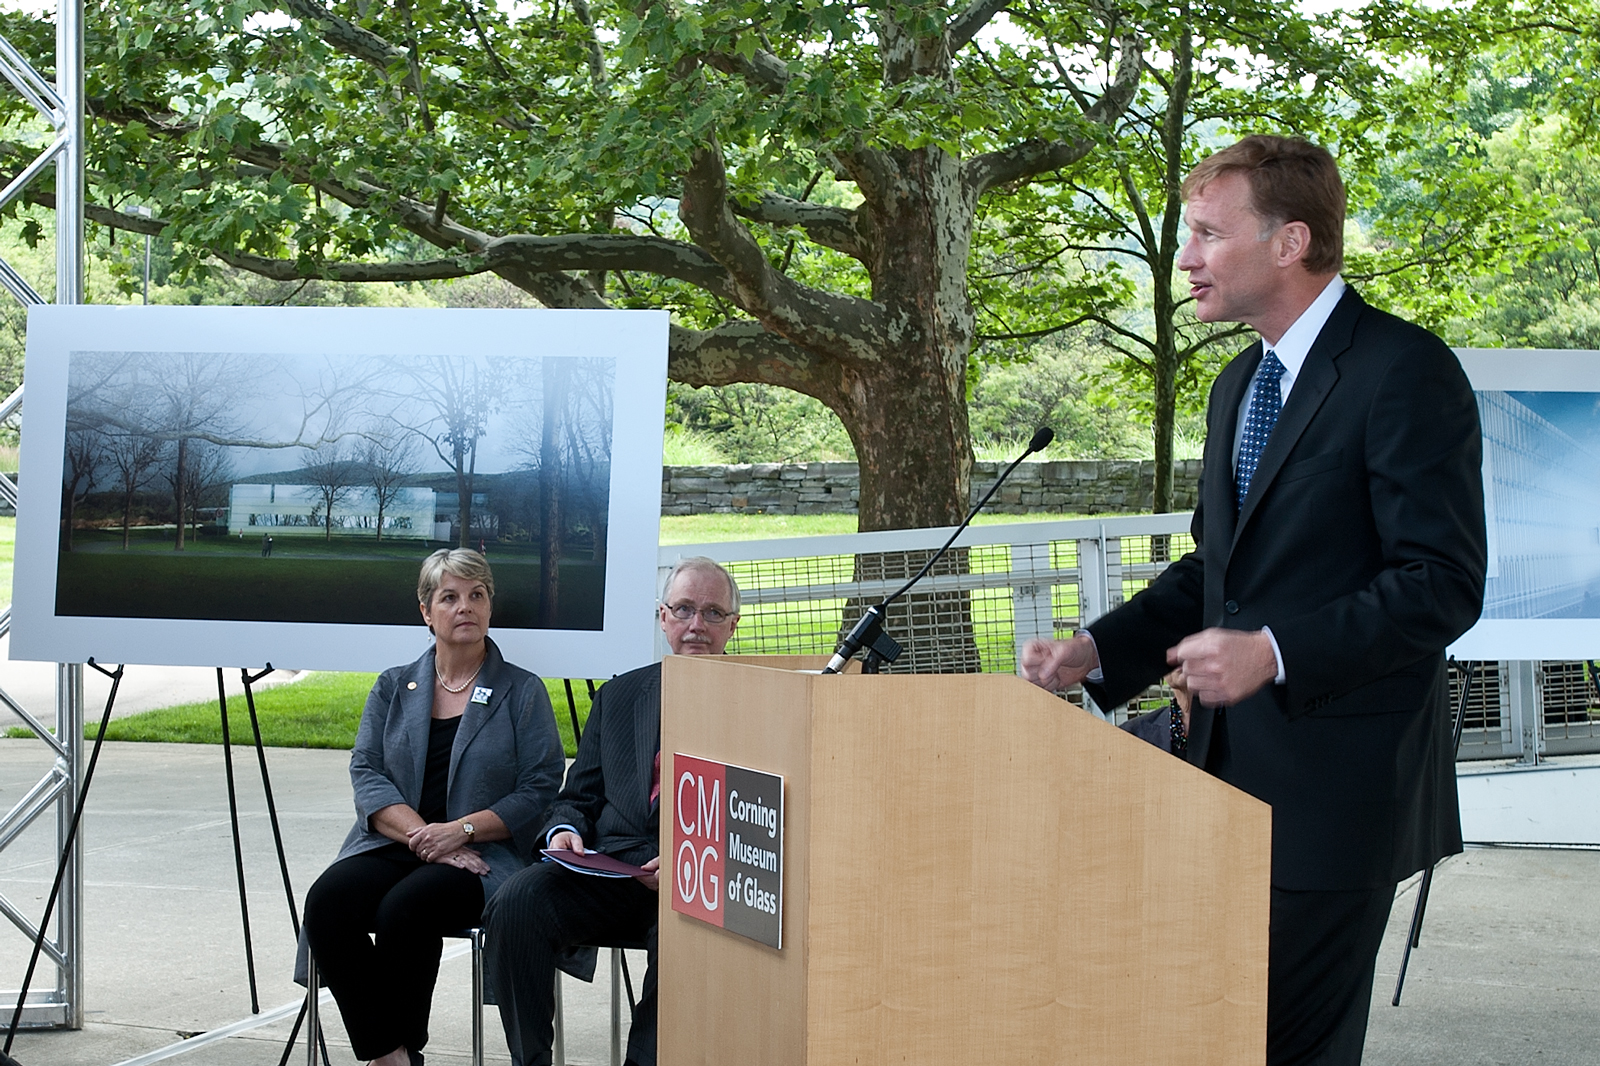 wendell weeks providing remarks at the north wing expansion ground breaking ceremony